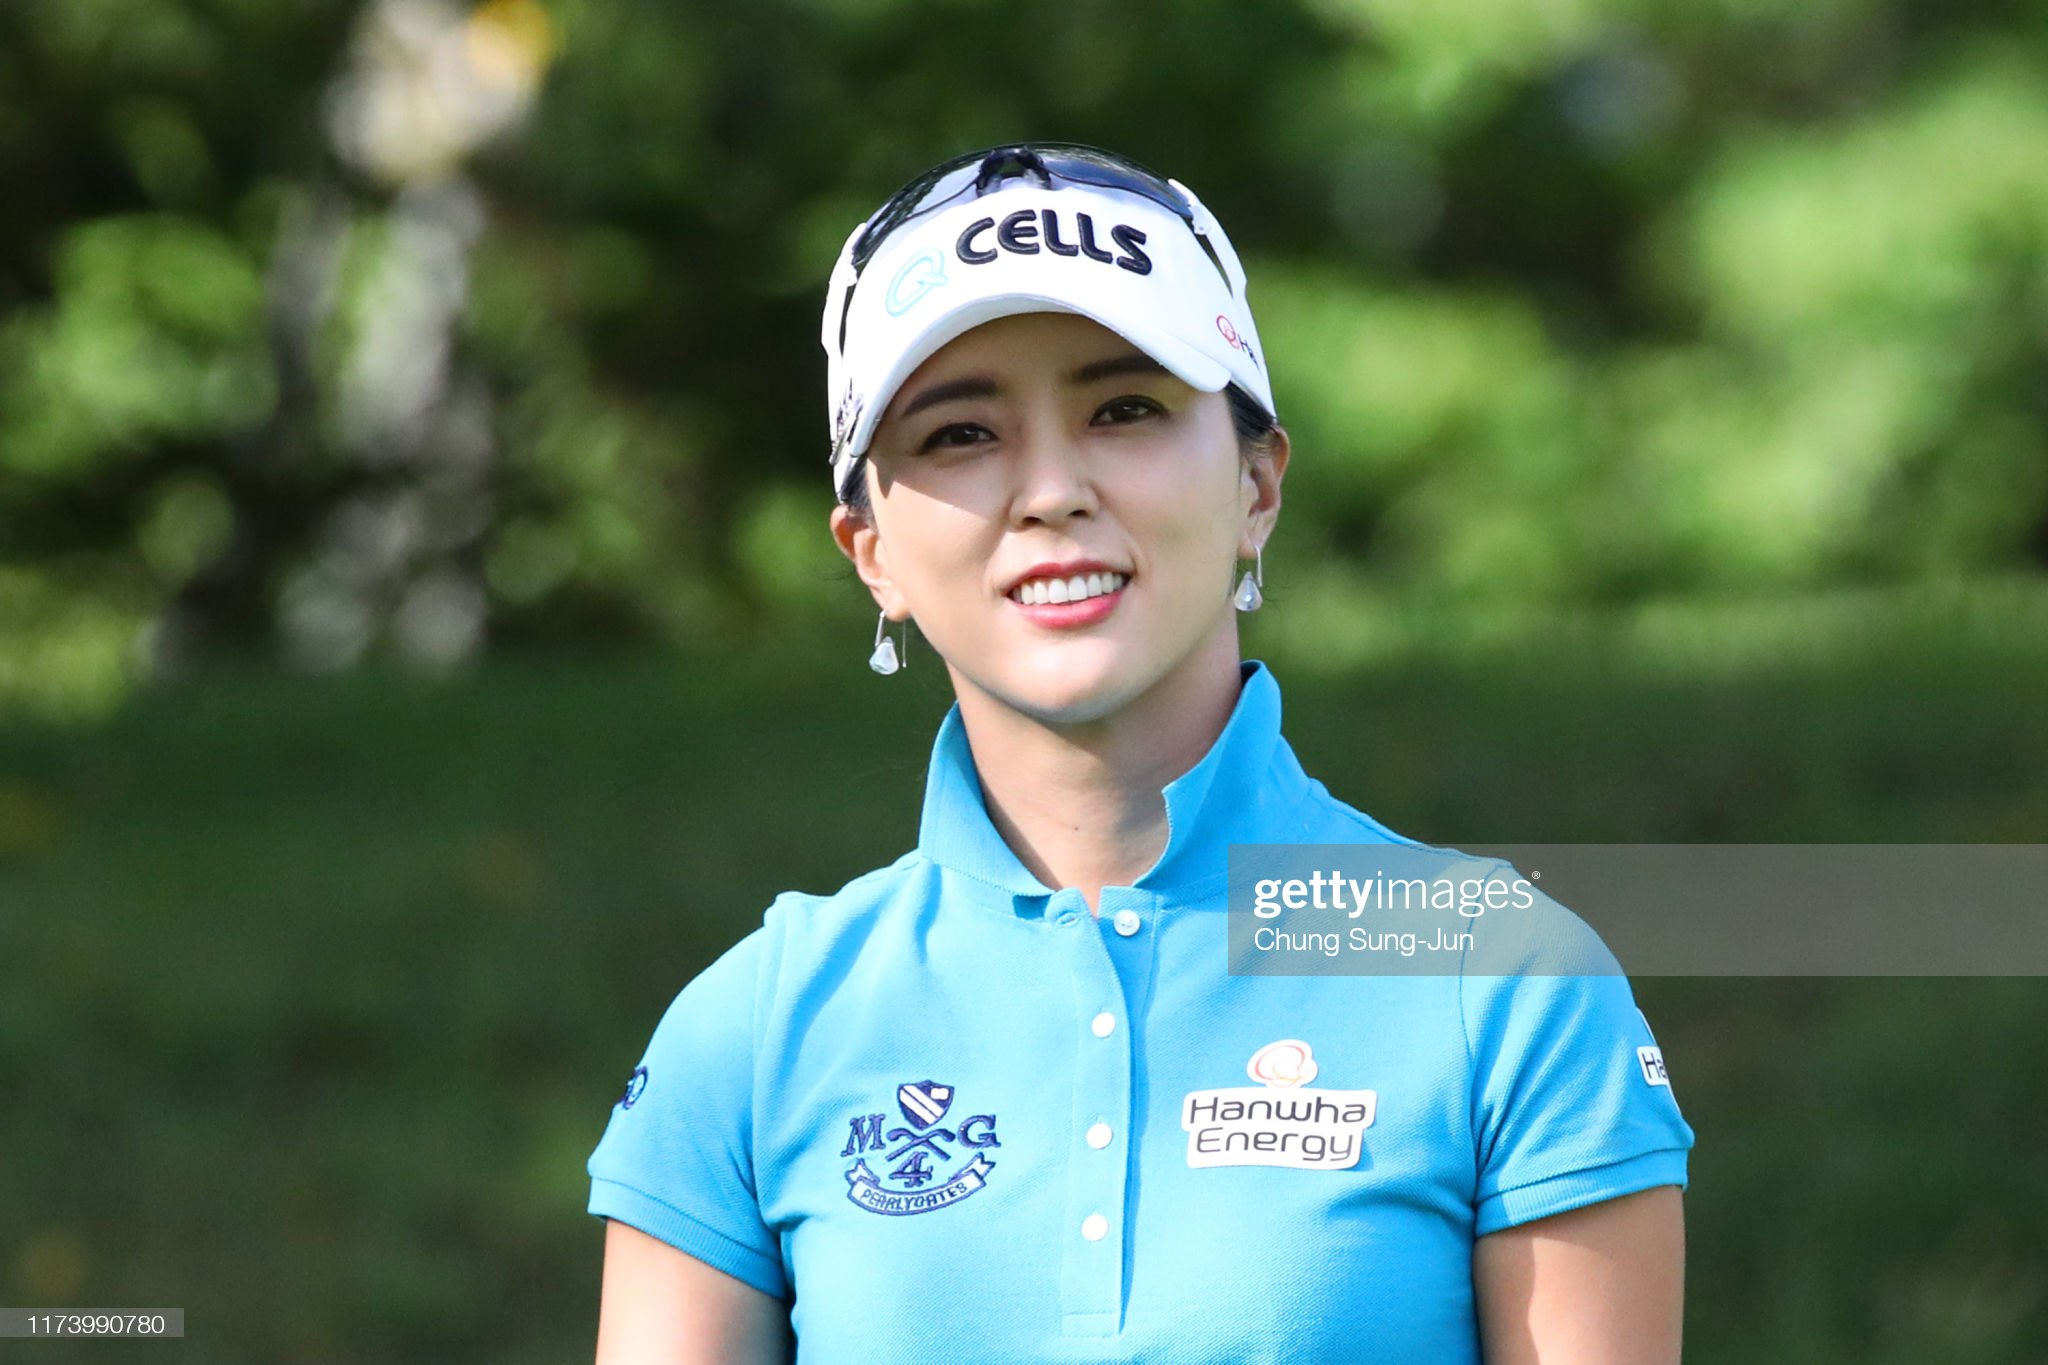 https://media.gettyimages.com/photos/chaeyoung-yoon-of-south-korea-is-seen-on-the-2nd-tee-during-the-first-picture-id1173990780?s=2048x2048